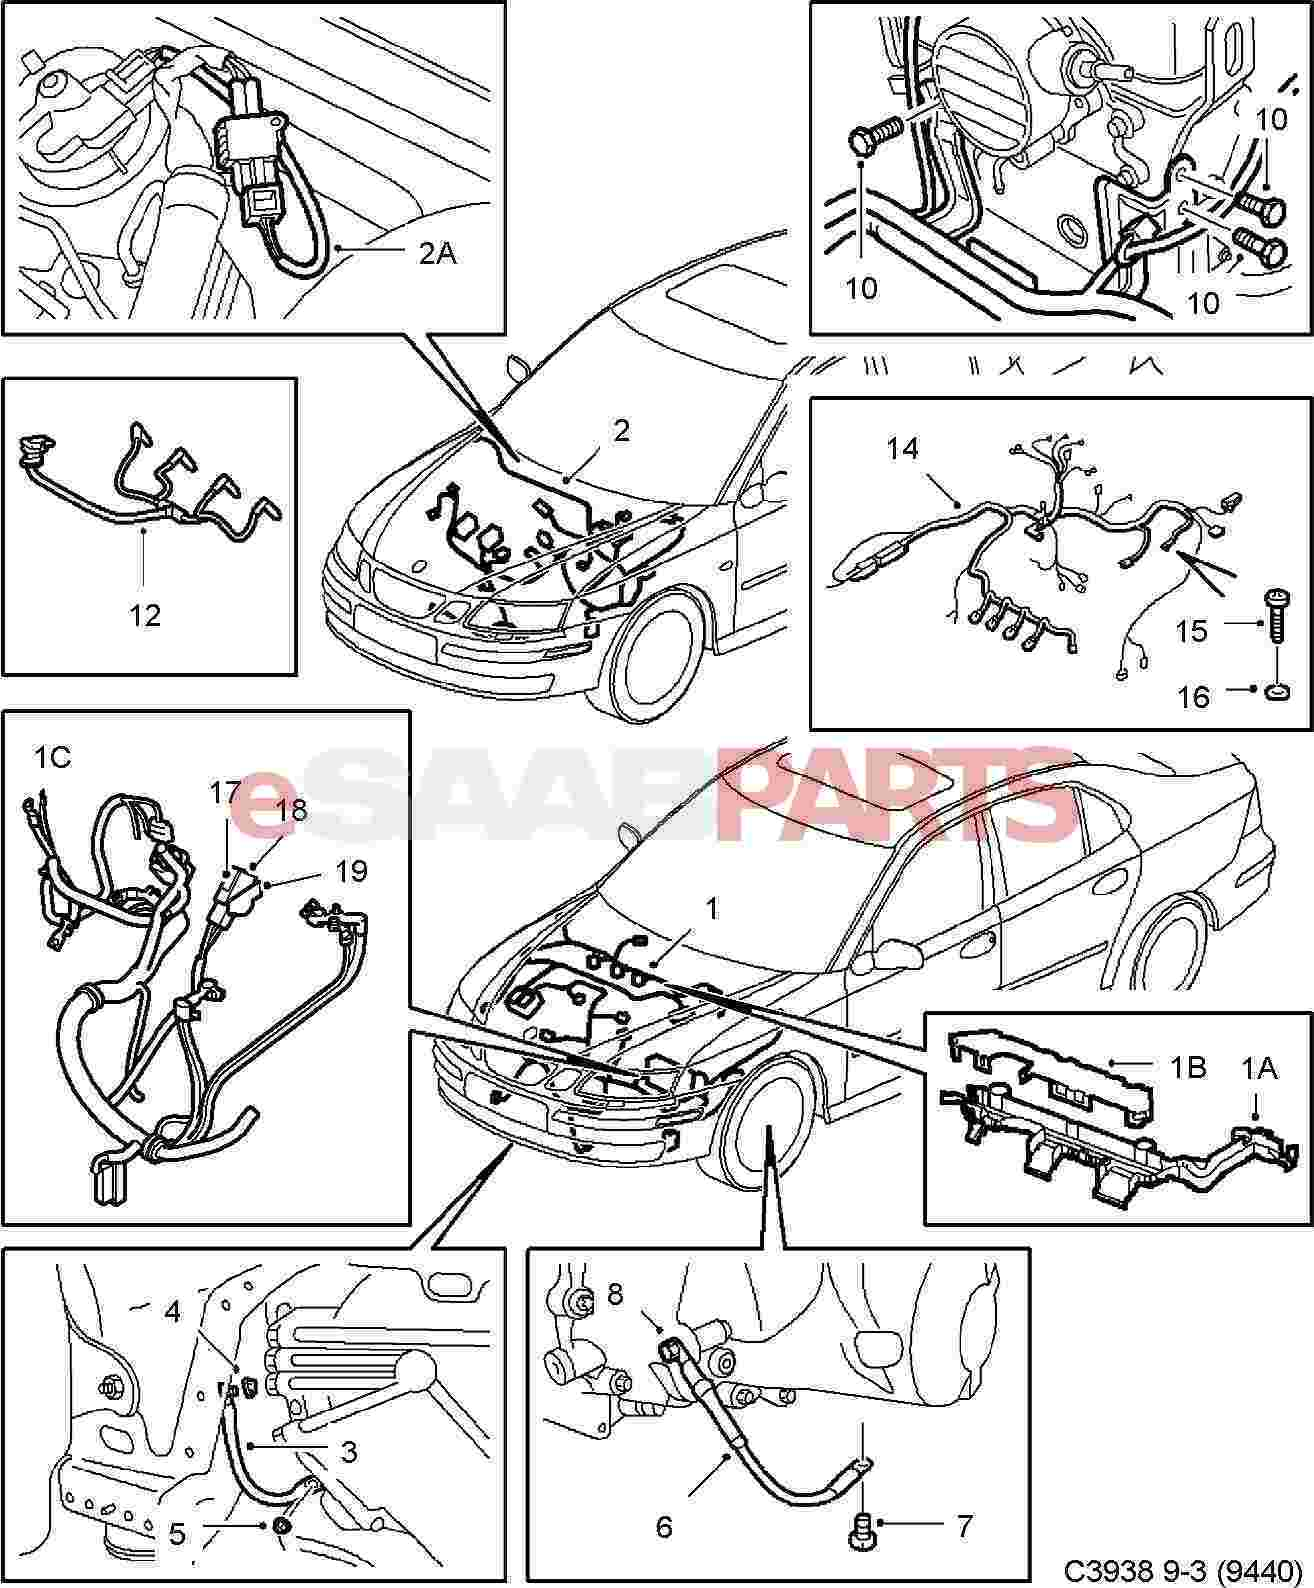 Saab 9 5 Wiring Diagram 2004 Saab 9 3 Electrical Diagram